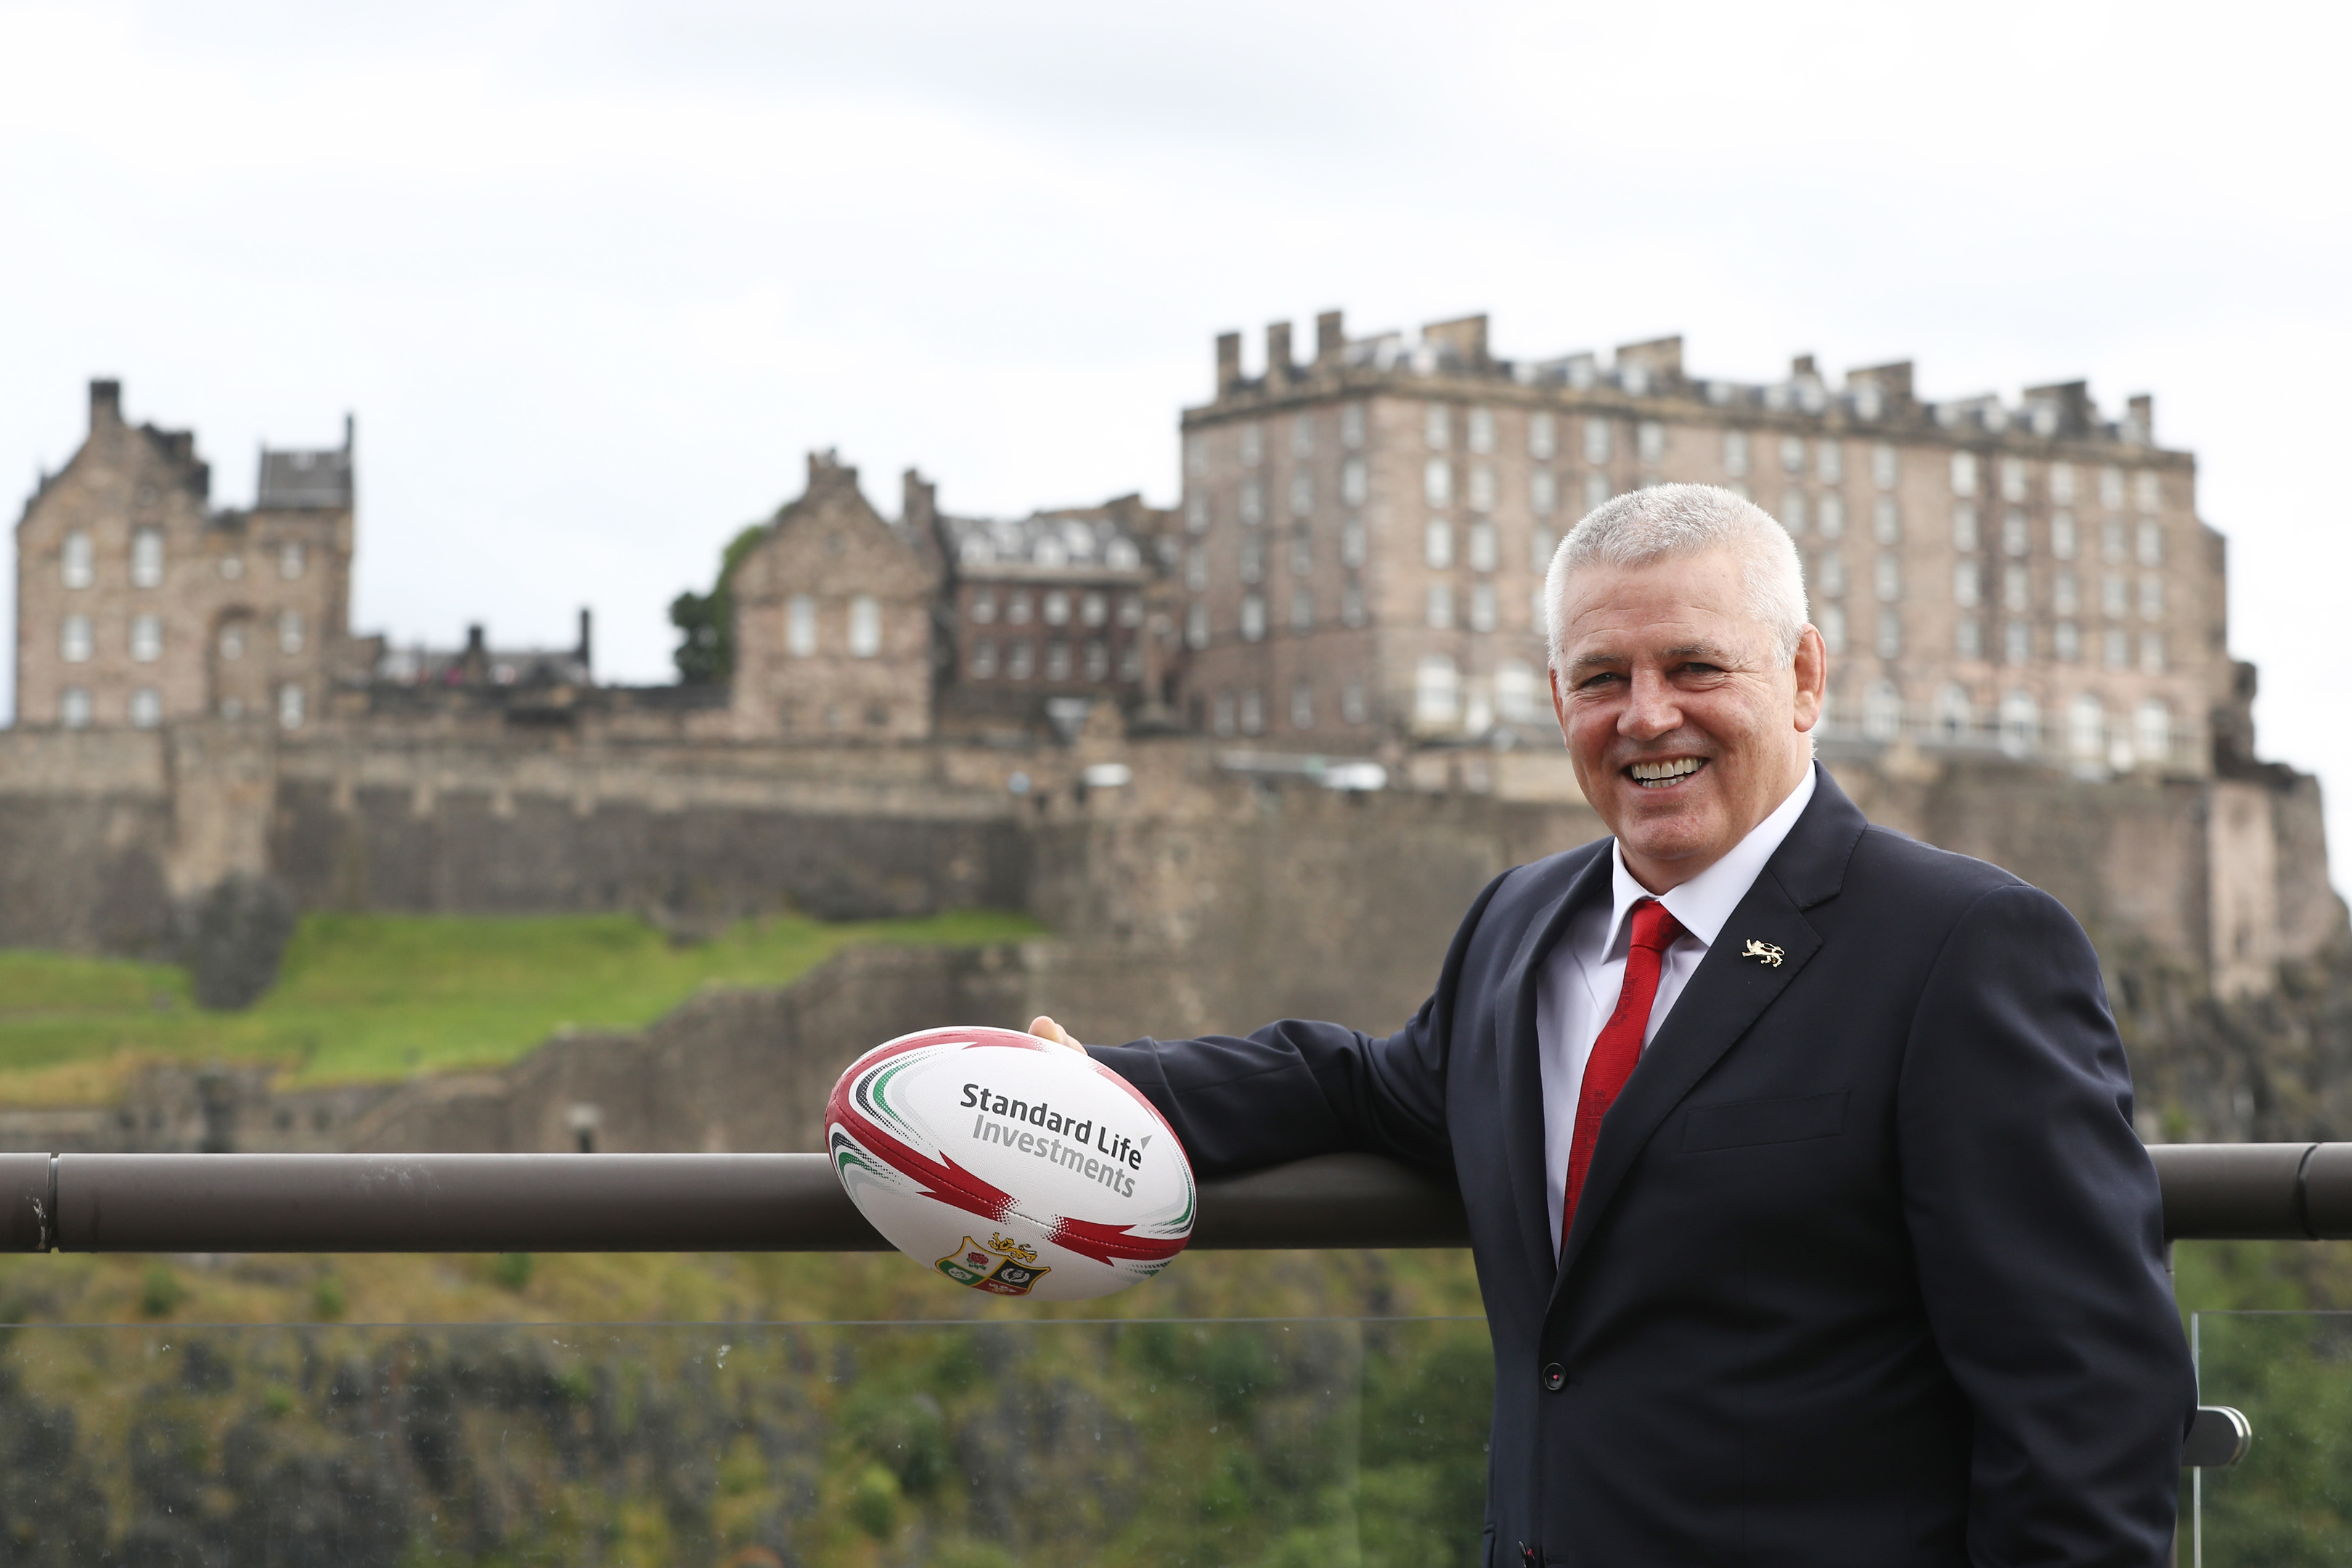 Warren Gatland, announced in Edinburgh yesterday as 2017 Lions coach, will pick his squad and team on merit only.